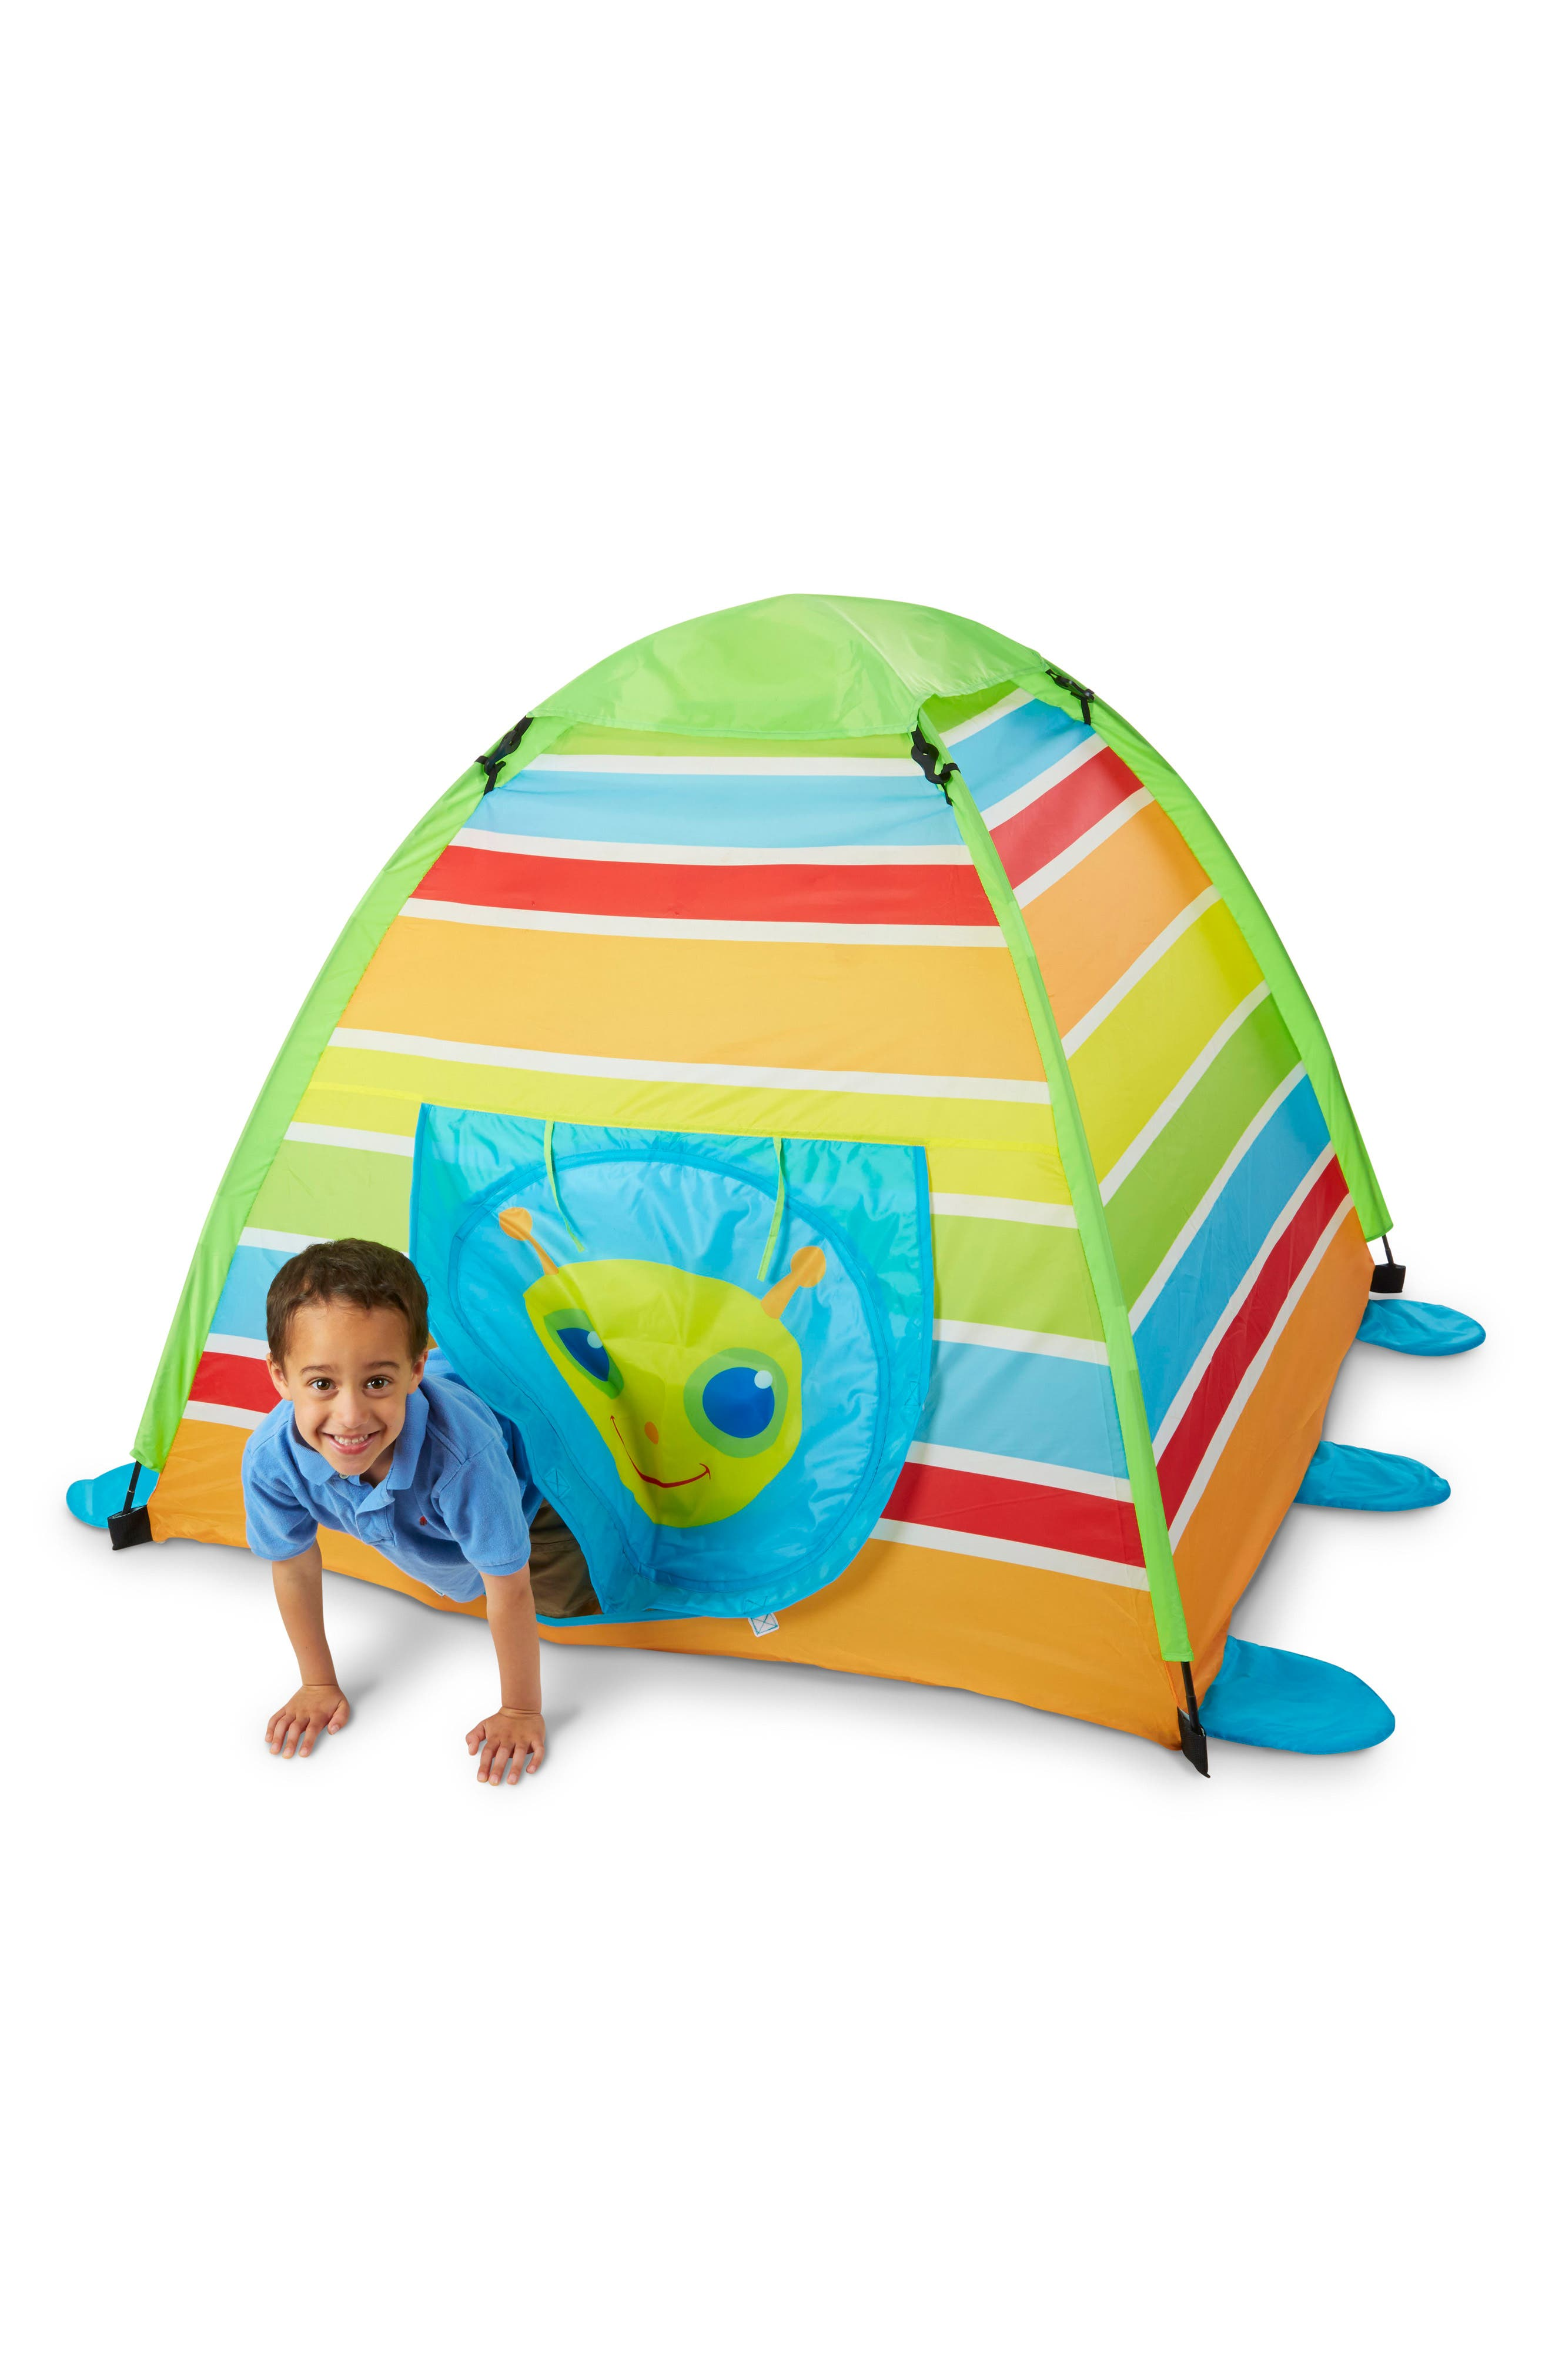 Giddy Buggy Tent,                             Alternate thumbnail 4, color,                             300